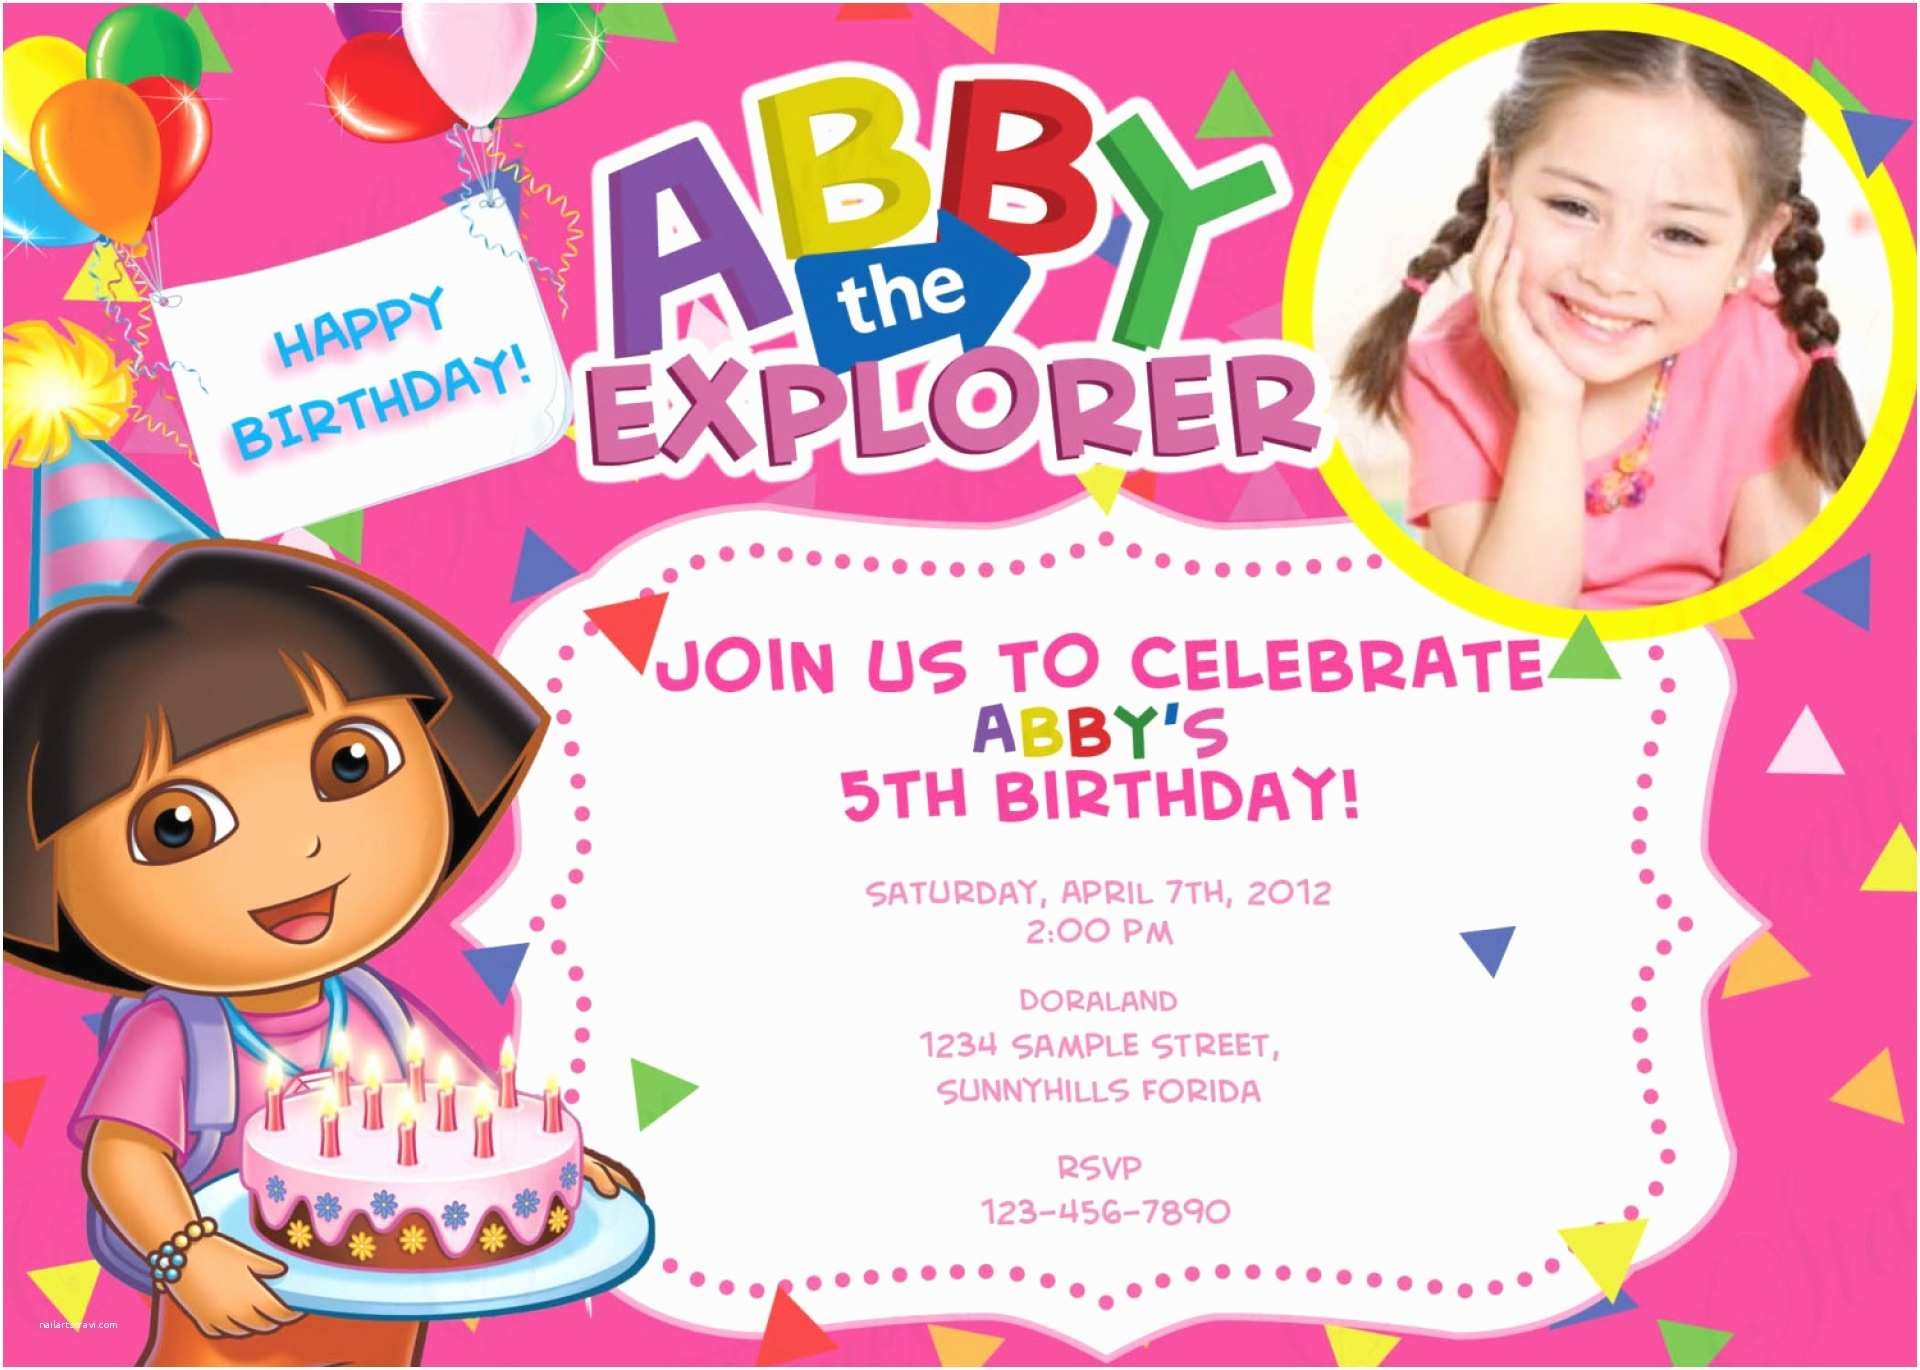 Personalized Birthday Invitations Customized Birthday Invitation Cards Online Free